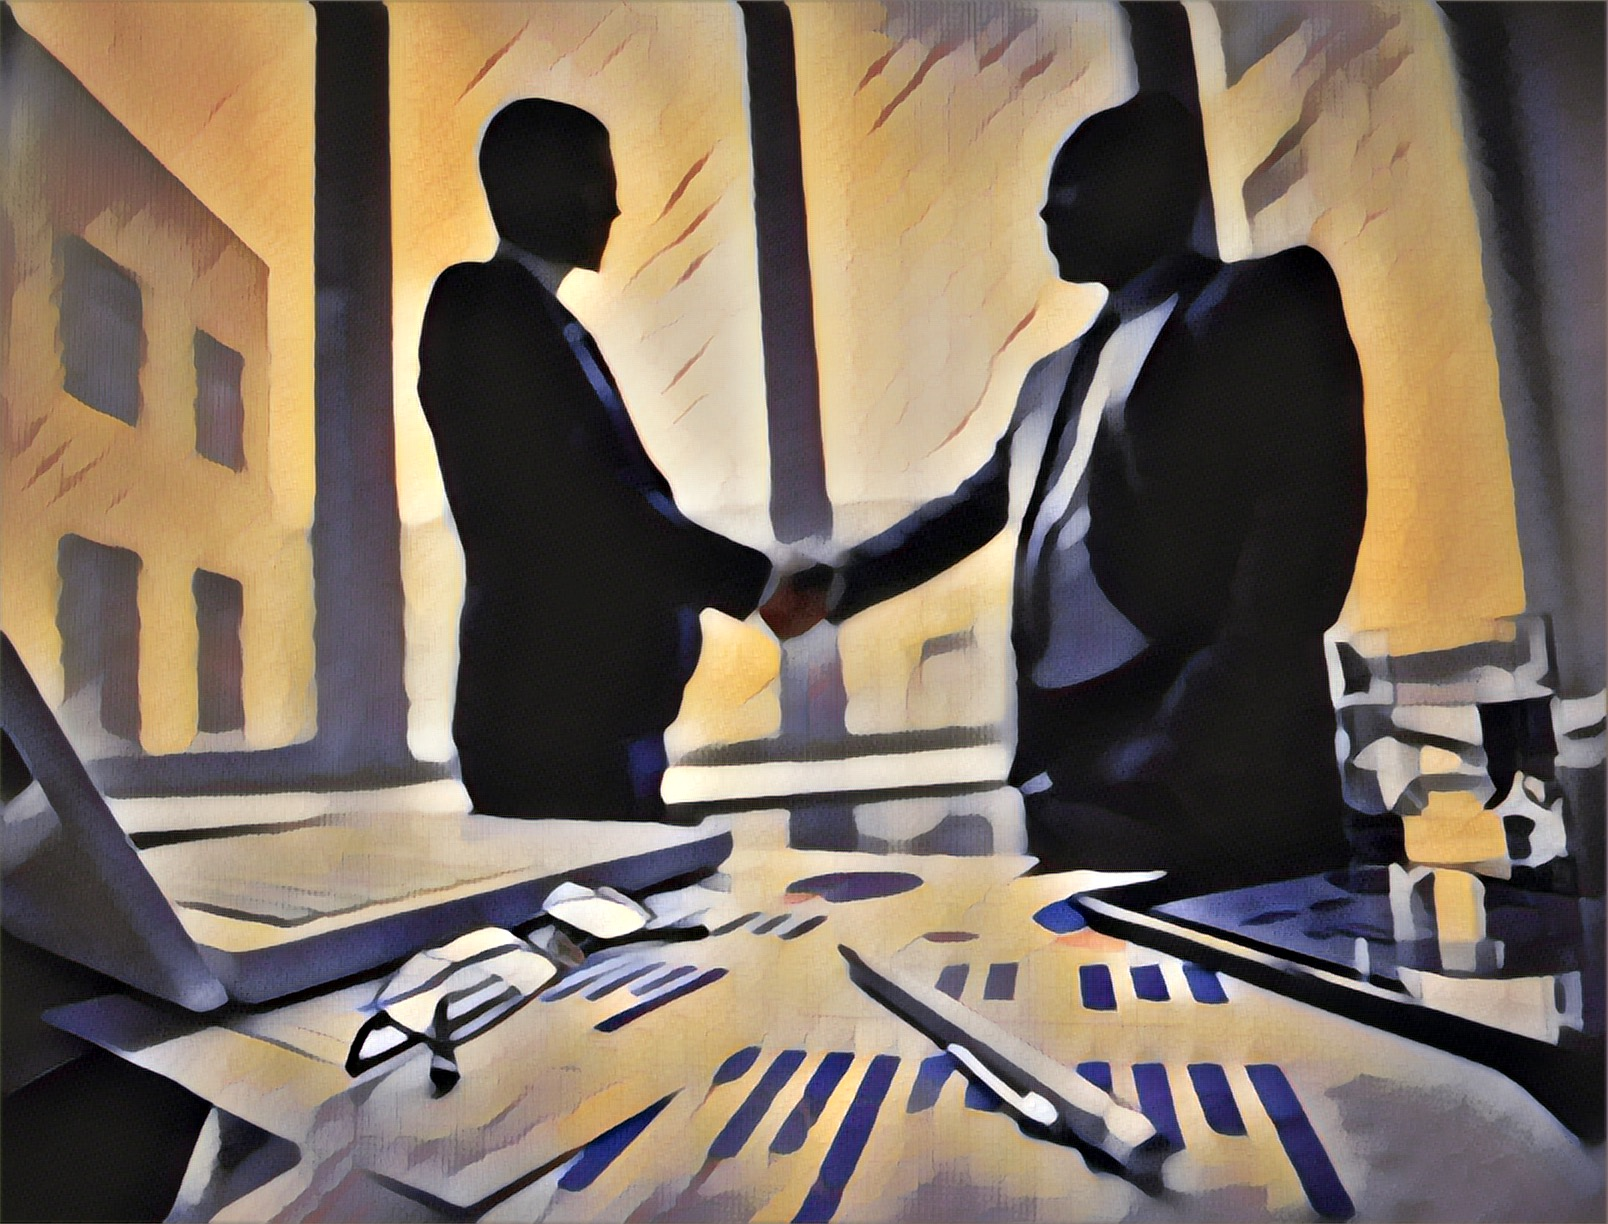 Prisma shifts focus to b2b with an API for AI-powered mobile effects